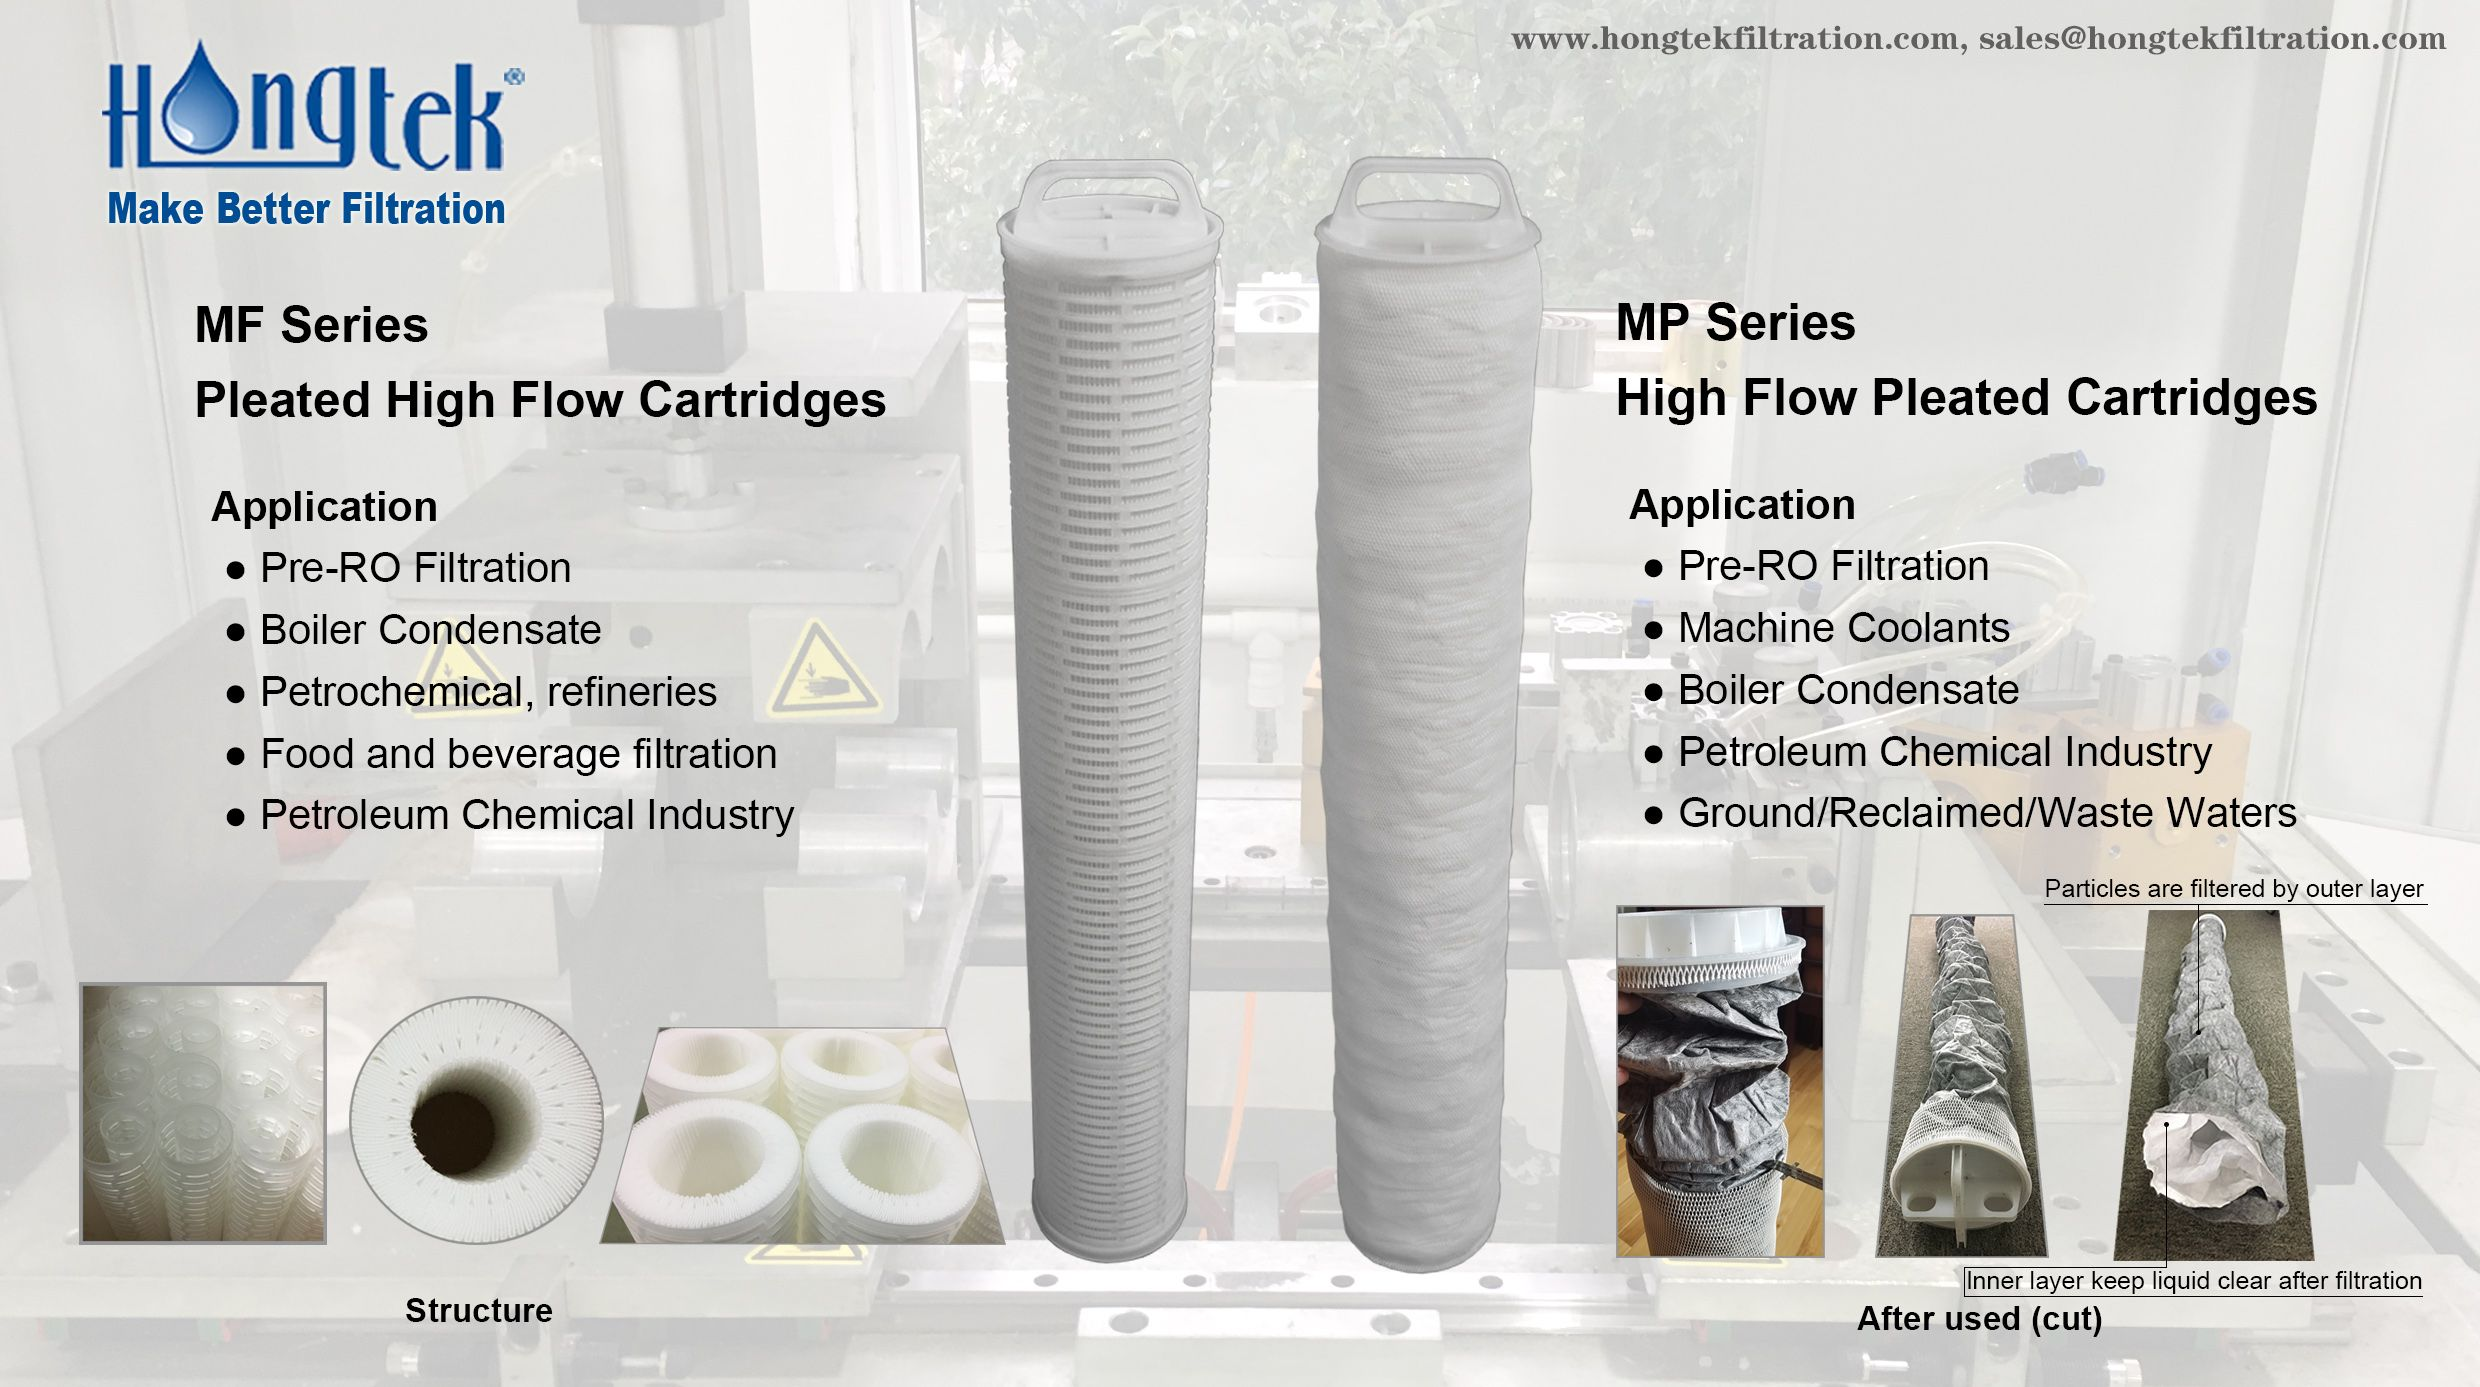 Compared With 2 5 Diameter Cartridges Hongtek High Flow Filters Advantages Fewer Elements Higher Flow Rates Lower Cost Filtration Flow Filters Cartridges